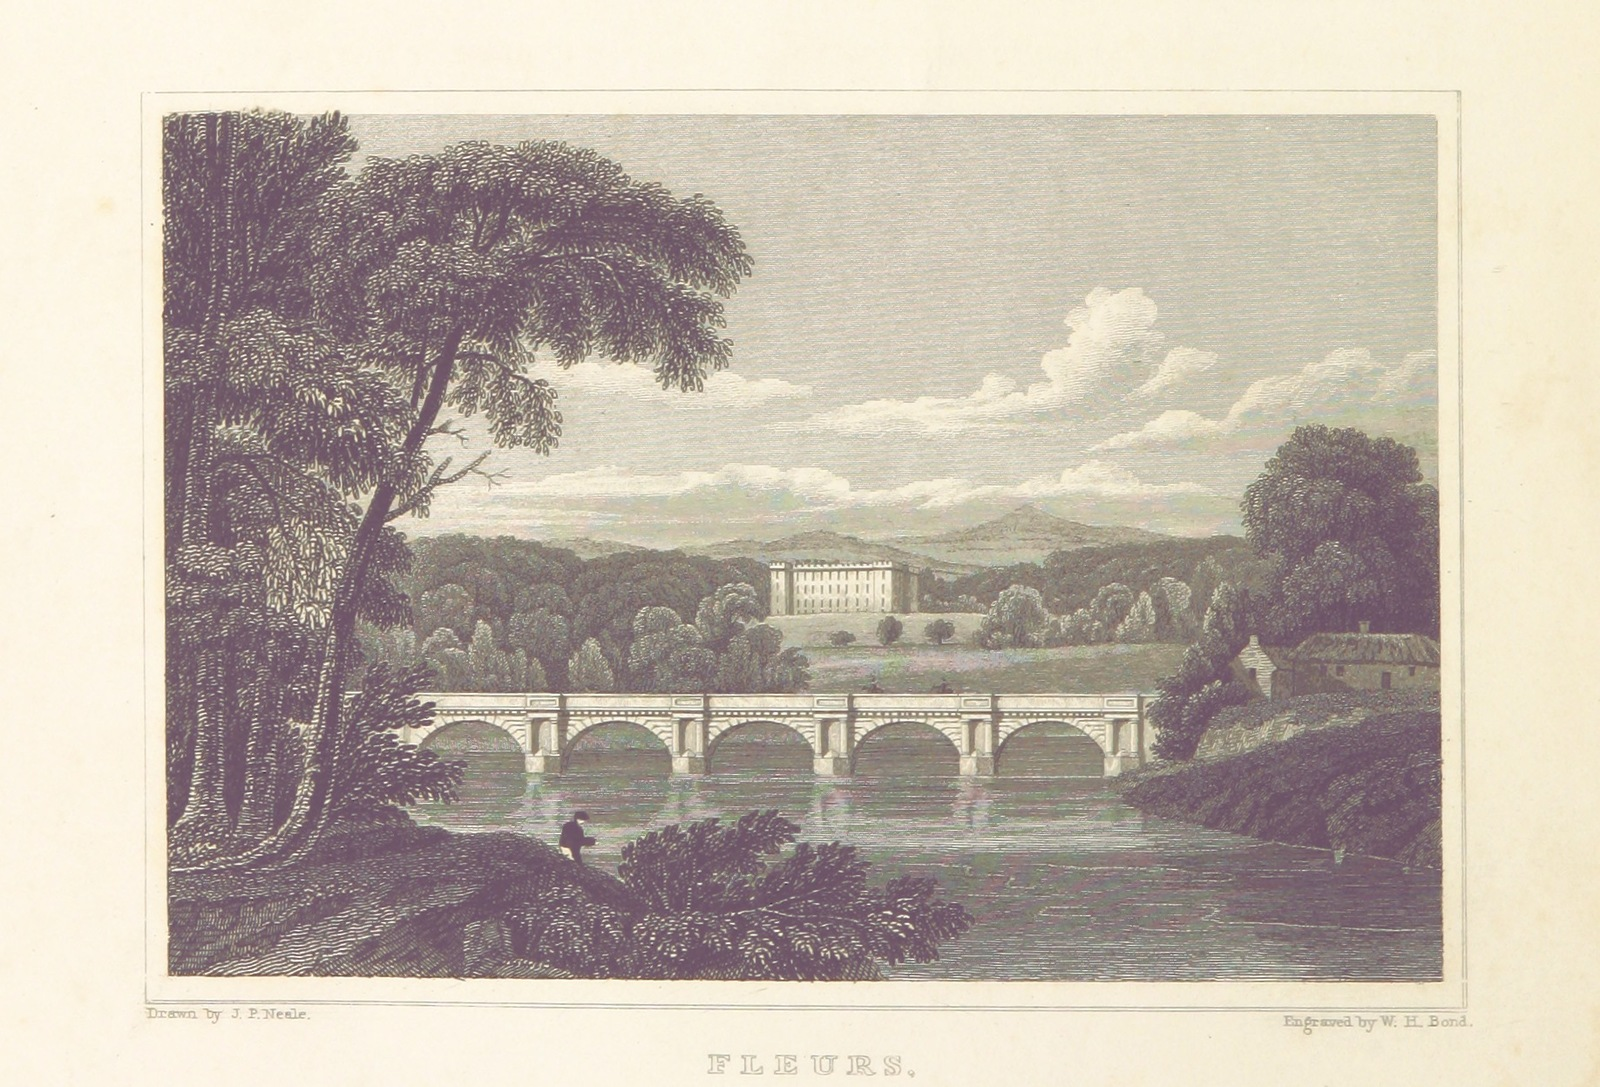 """bridge from """"Modern Athens, displayed in a series of views; or, Edinburgh in the nineteenth century; exhibiting the whole of the new buildings, modern improvements, antiquities, & picturesque scenery of the Scottish metropolis & its environs, from original drawings by Mr. T. H. Shepherd. With historical, topographical & critical illustrations [by John Britton]"""""""